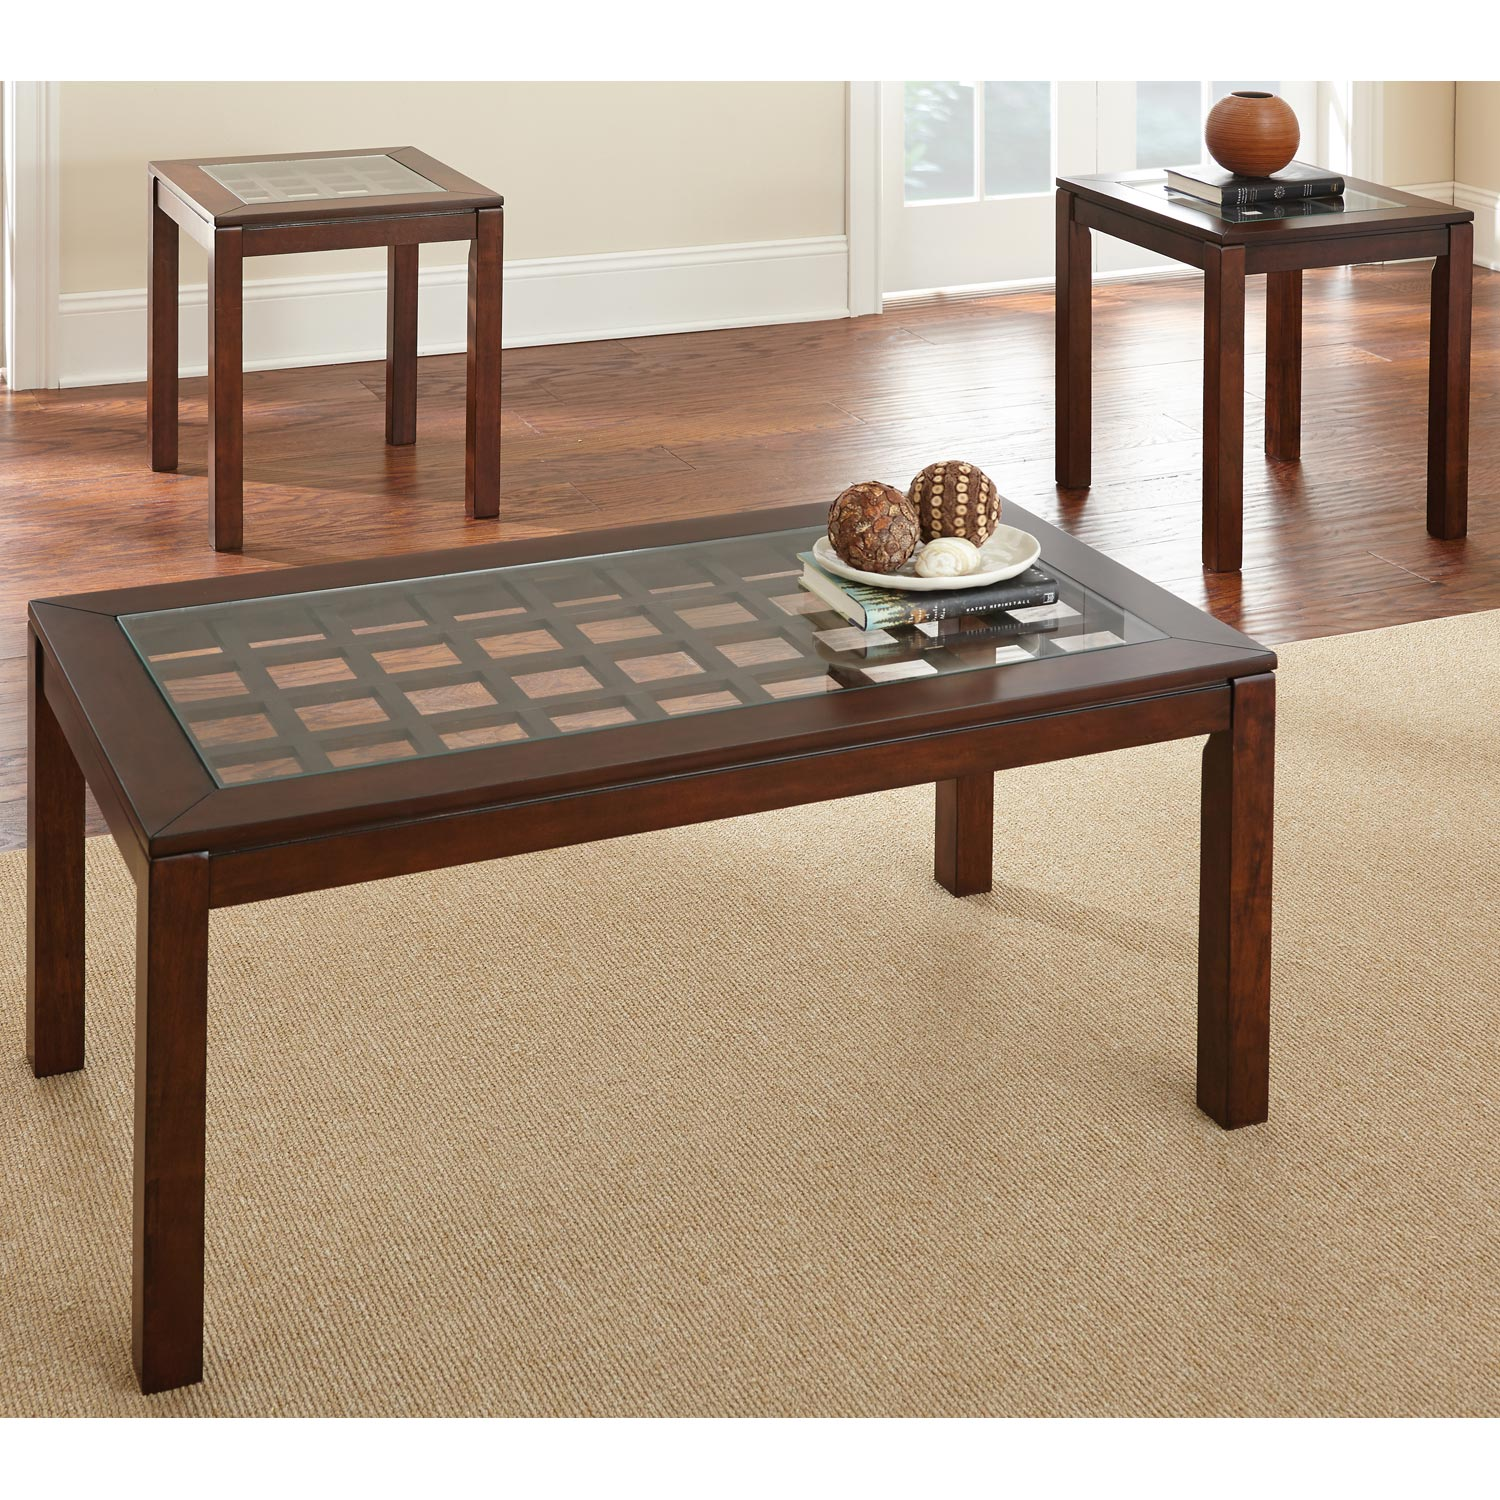 Dixon Coffee Table & Side Tables Set - Tempered Glass, Cherry - SSC-DX3000